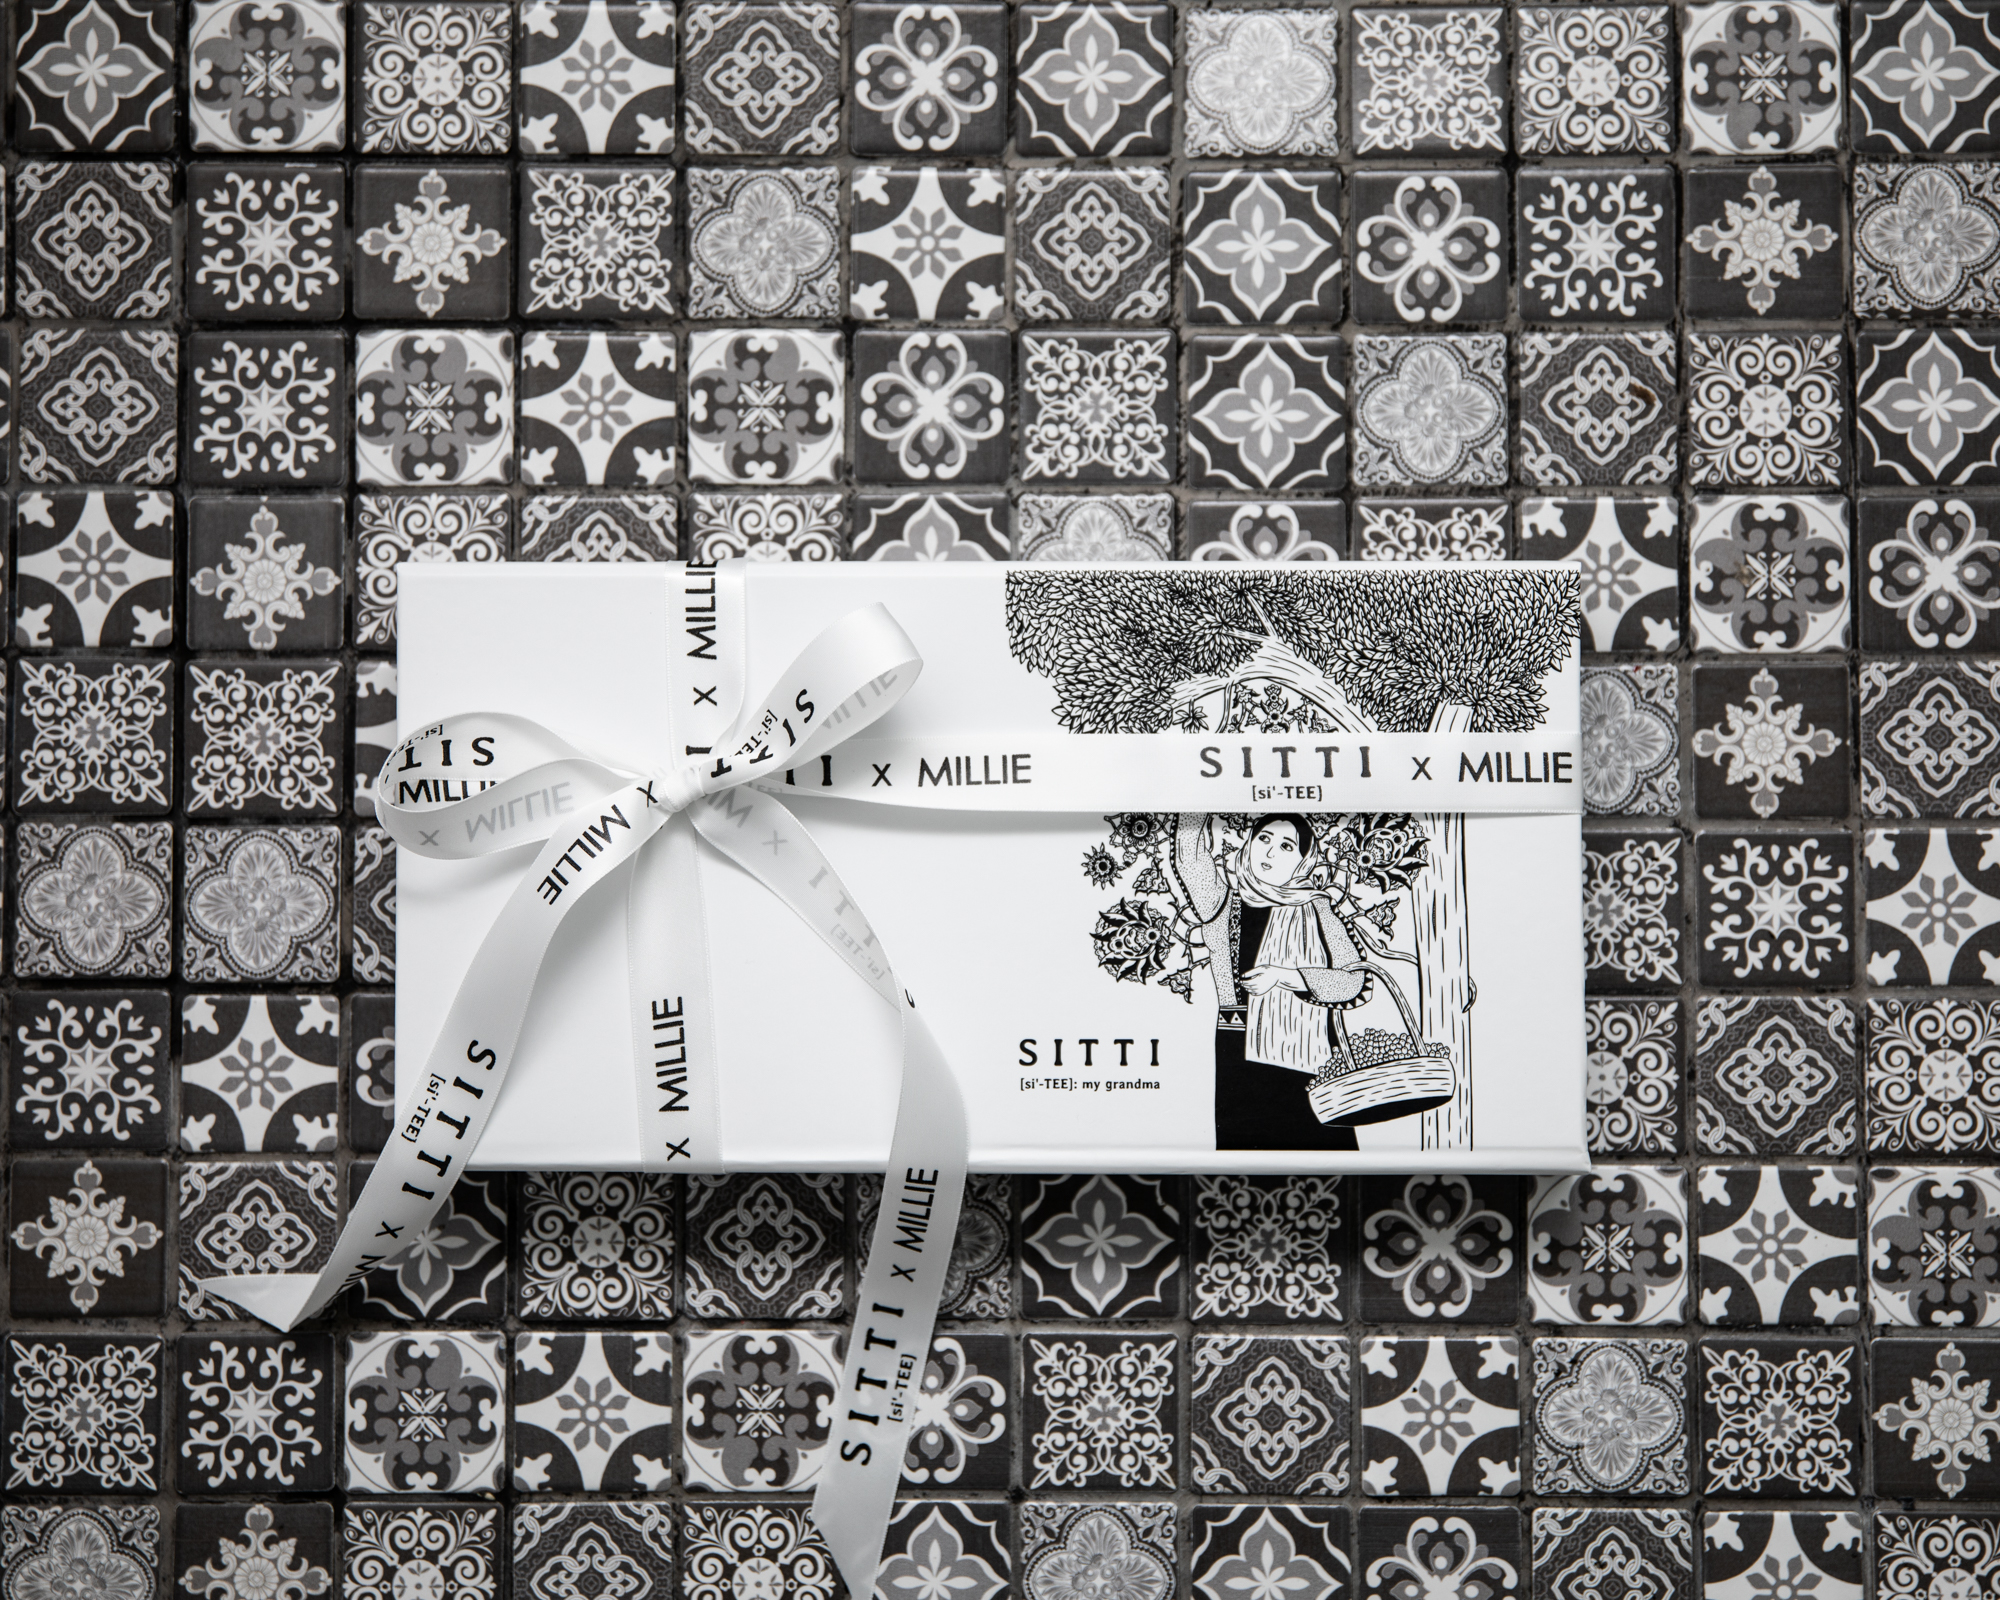 Sitti x Millie product packaging on a mosaic background